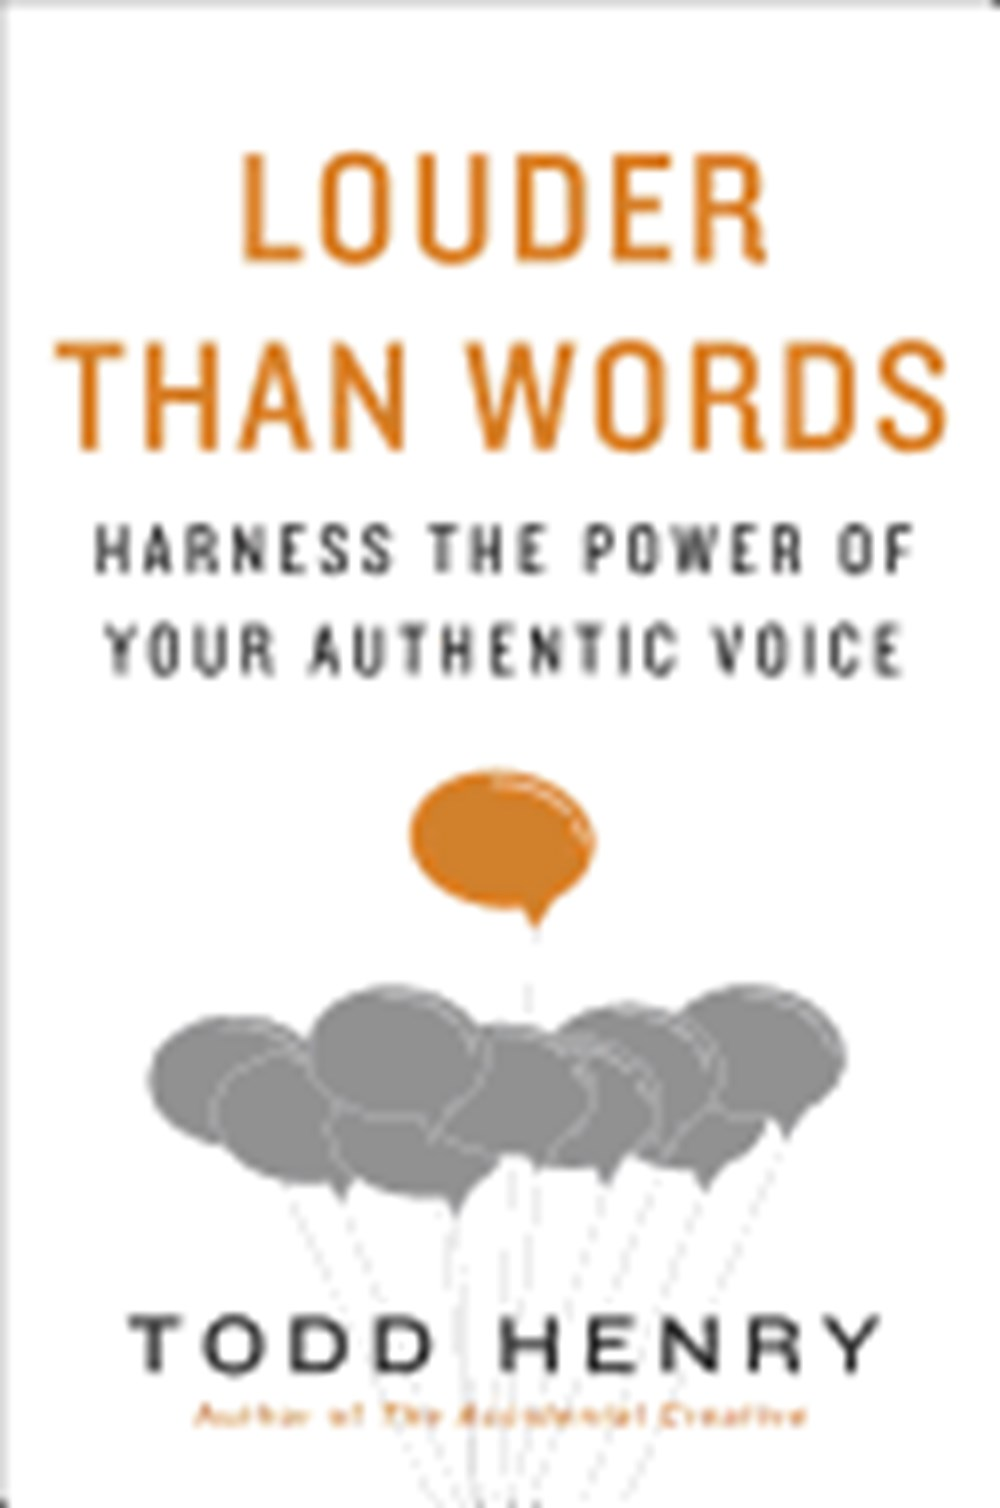 Louder Than Words Harness the Power of Your Authentic Voice